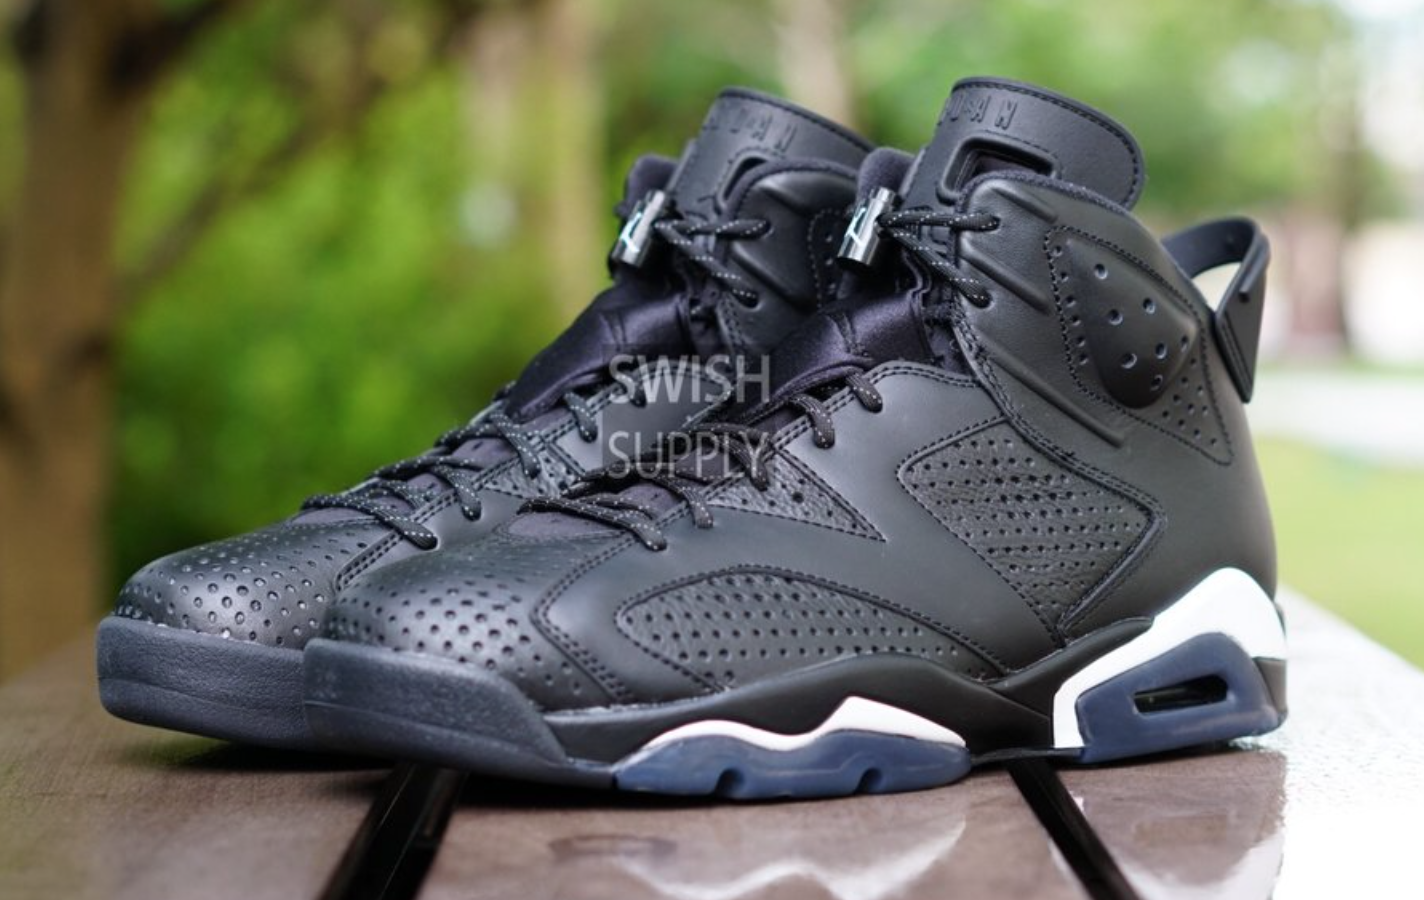 20182017 Fashion Sneakers Nike Mens Air Jordan 6 Retro Leather Basketball Shoes Outlet Online